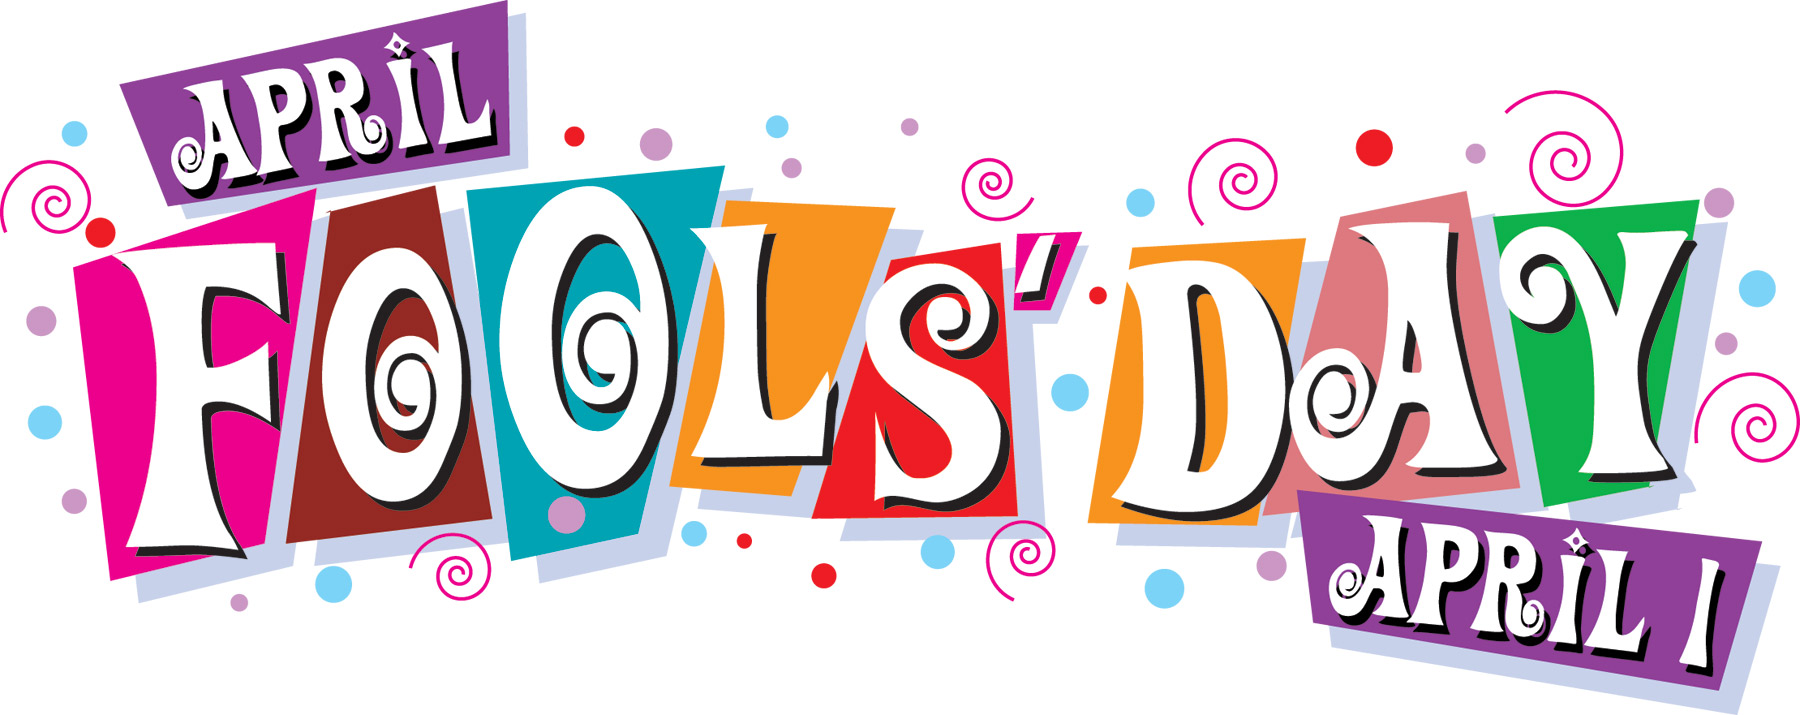 11 April Fools Day Clip Art Free Free Cliparts That You Can Download